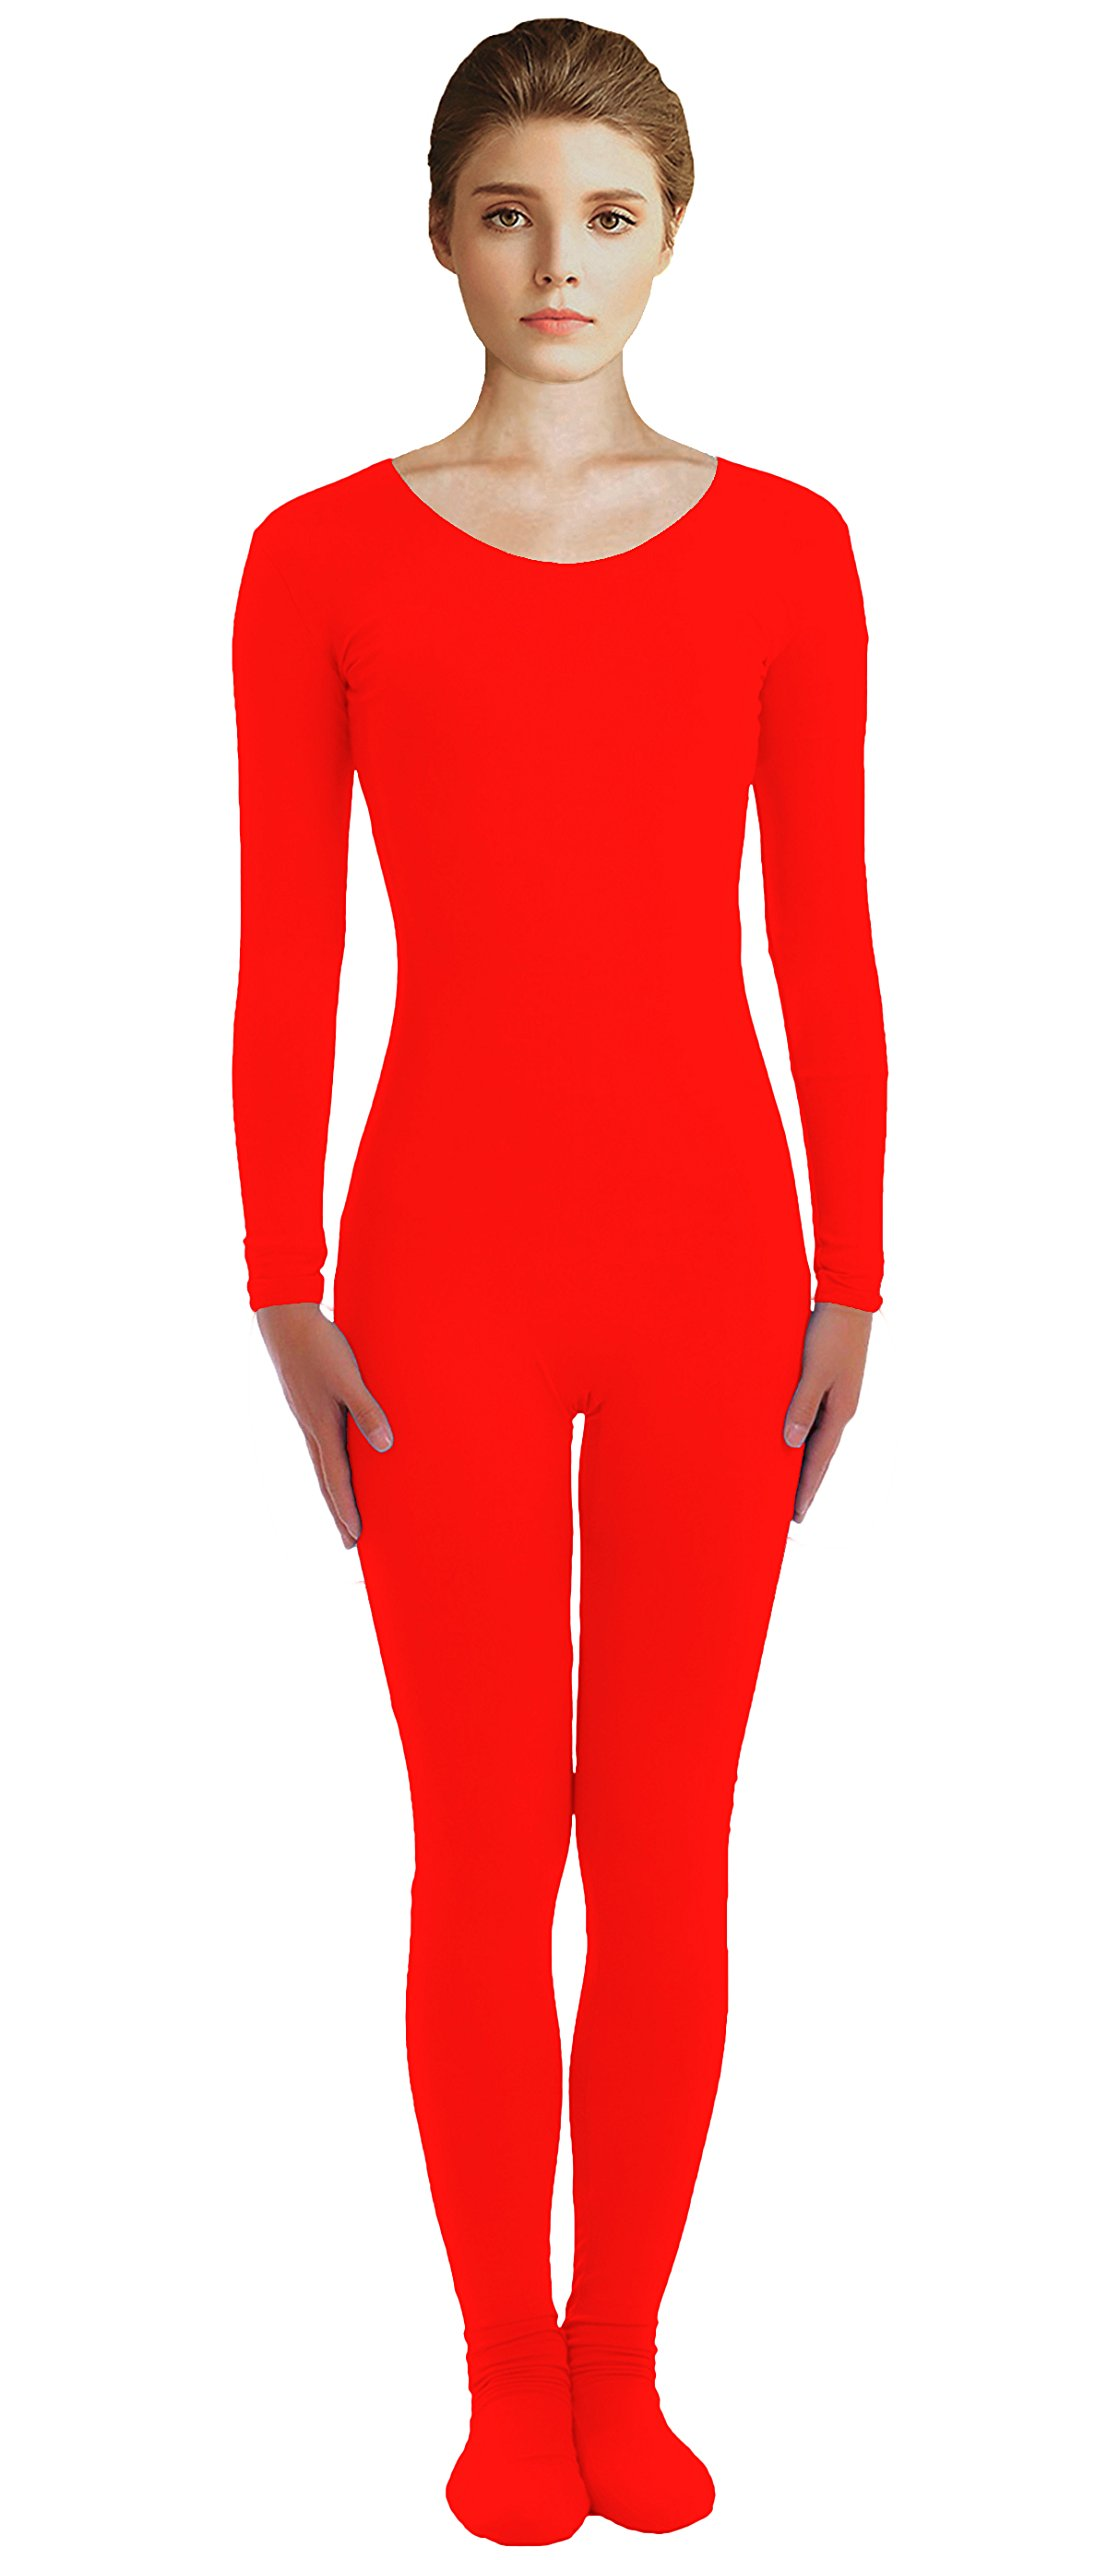 VSVO Adult Red Scoop Neckline Unitard with Socks Catsuit Dancewear (Large, Red) by VSVO